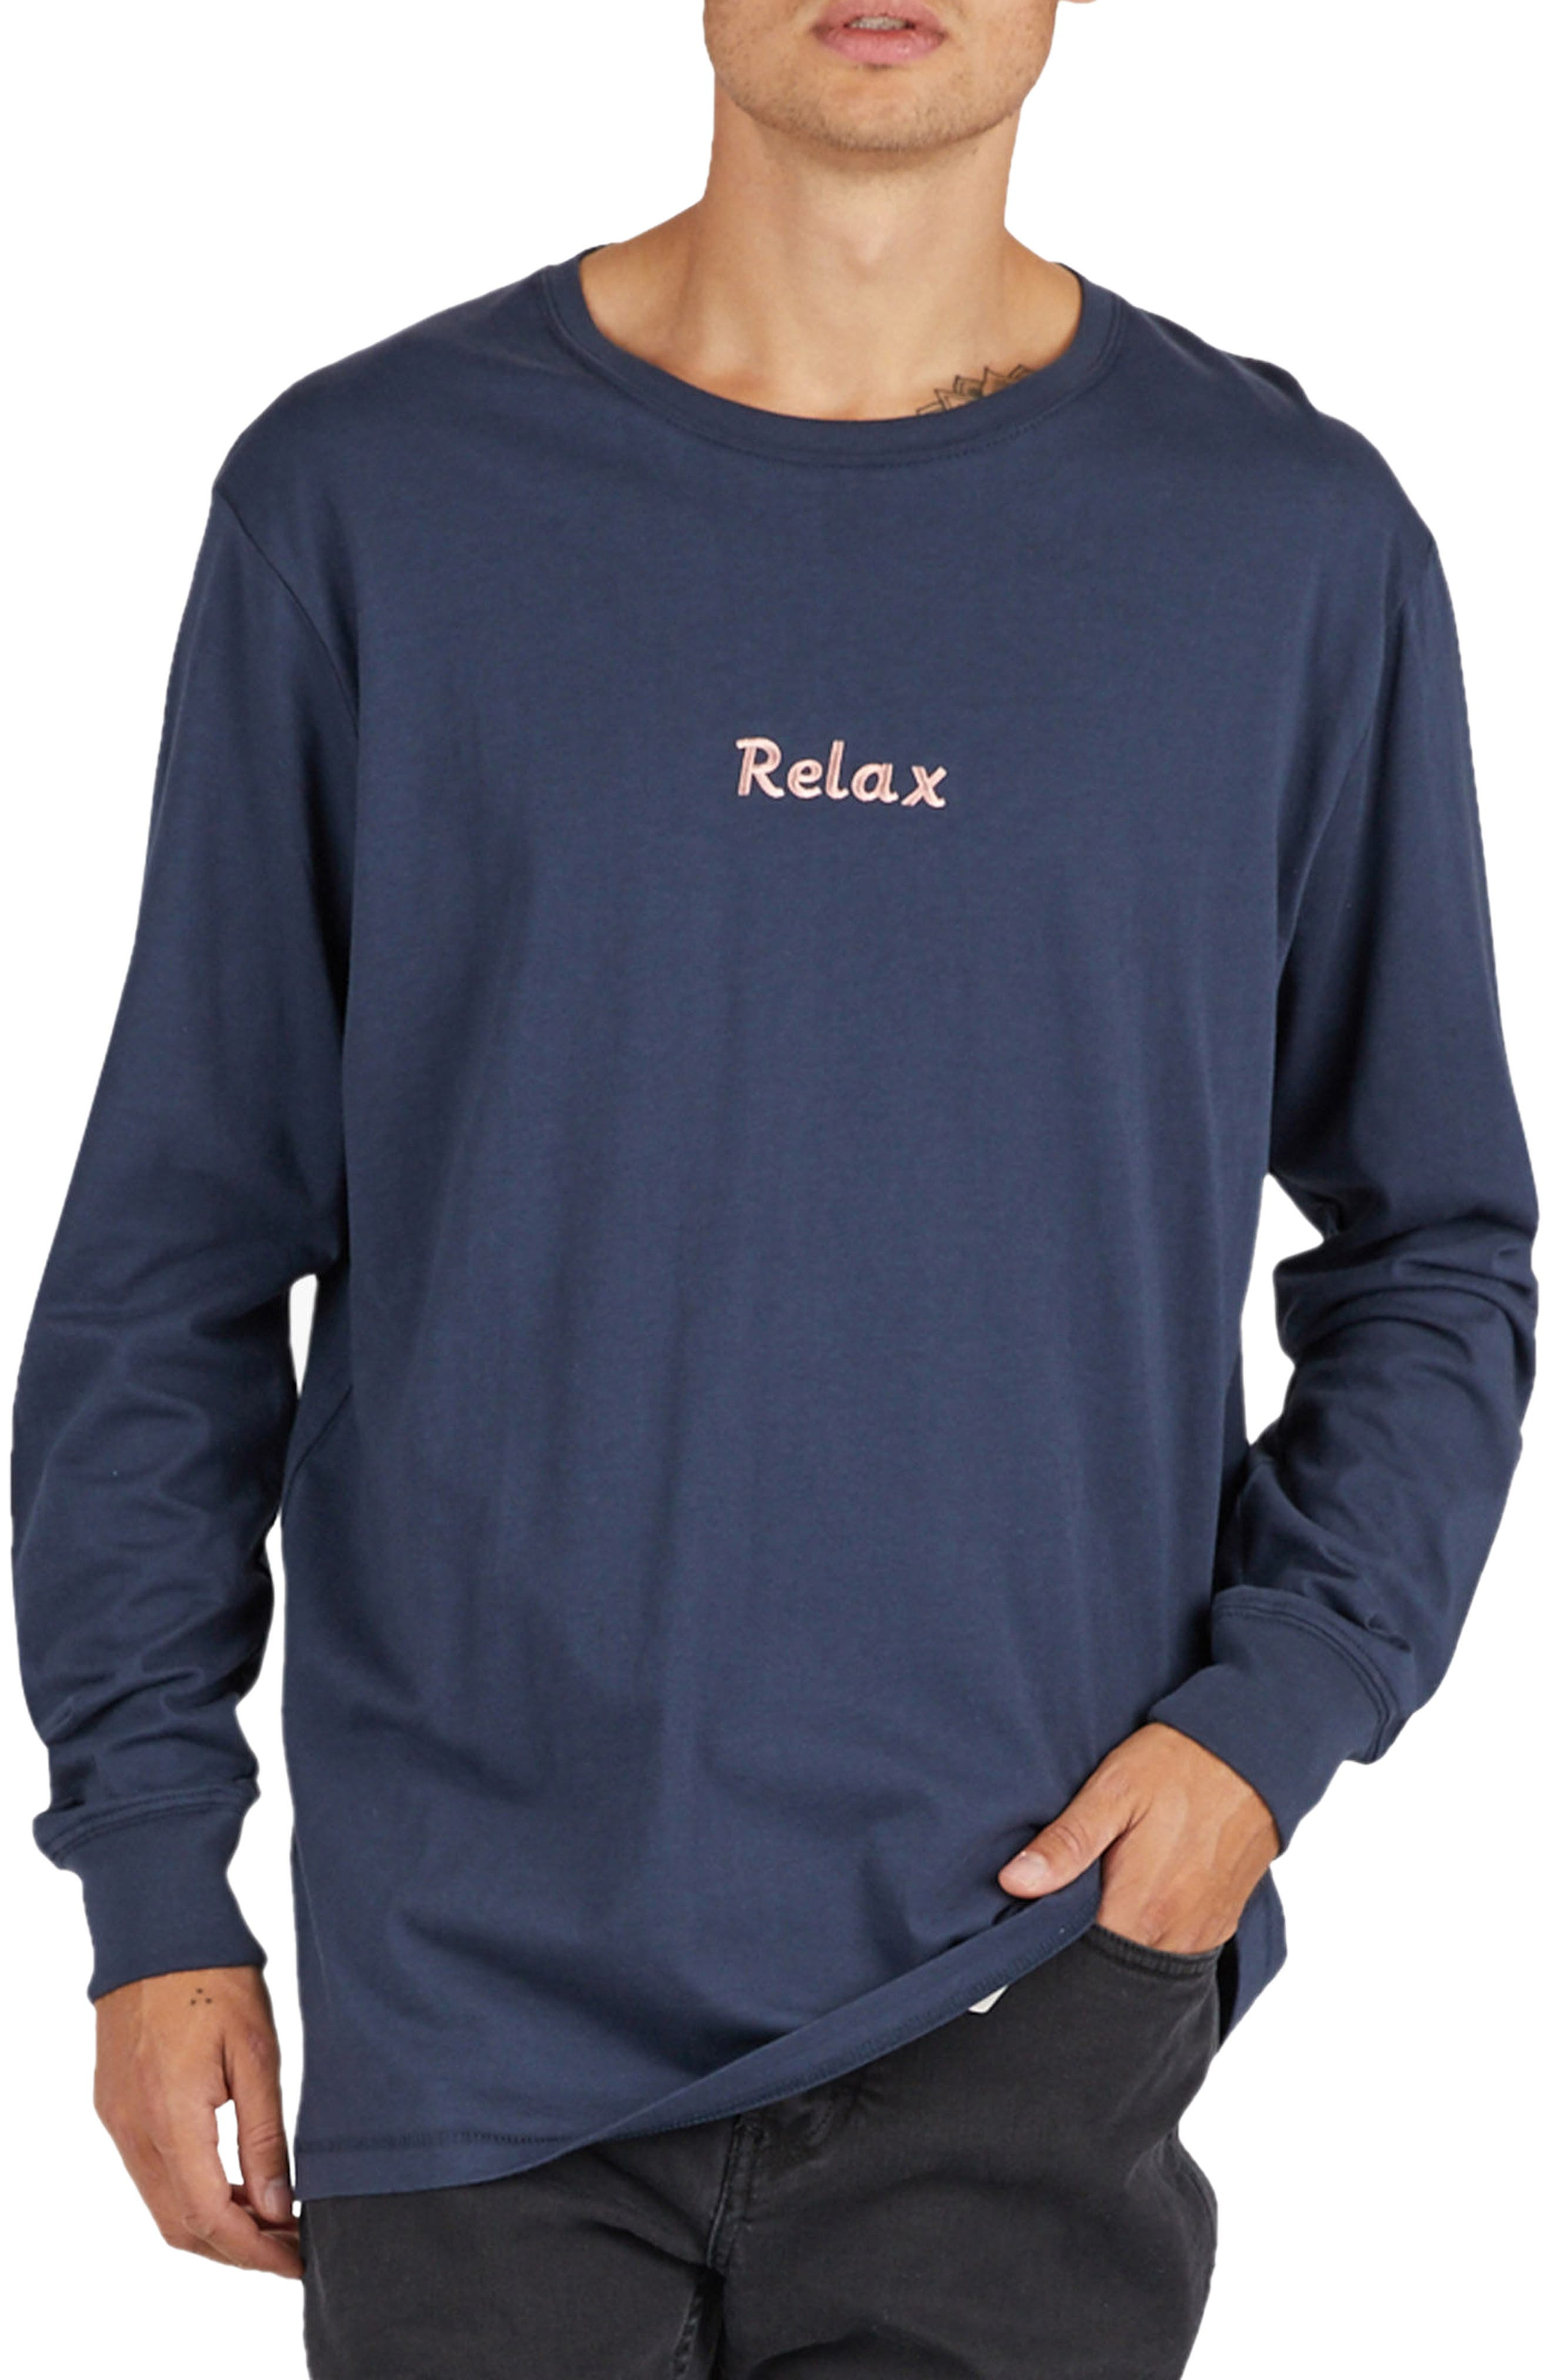 Relax Embroidered Long Sleeve T-Shirt,                             Alternate thumbnail 6, color,                             415